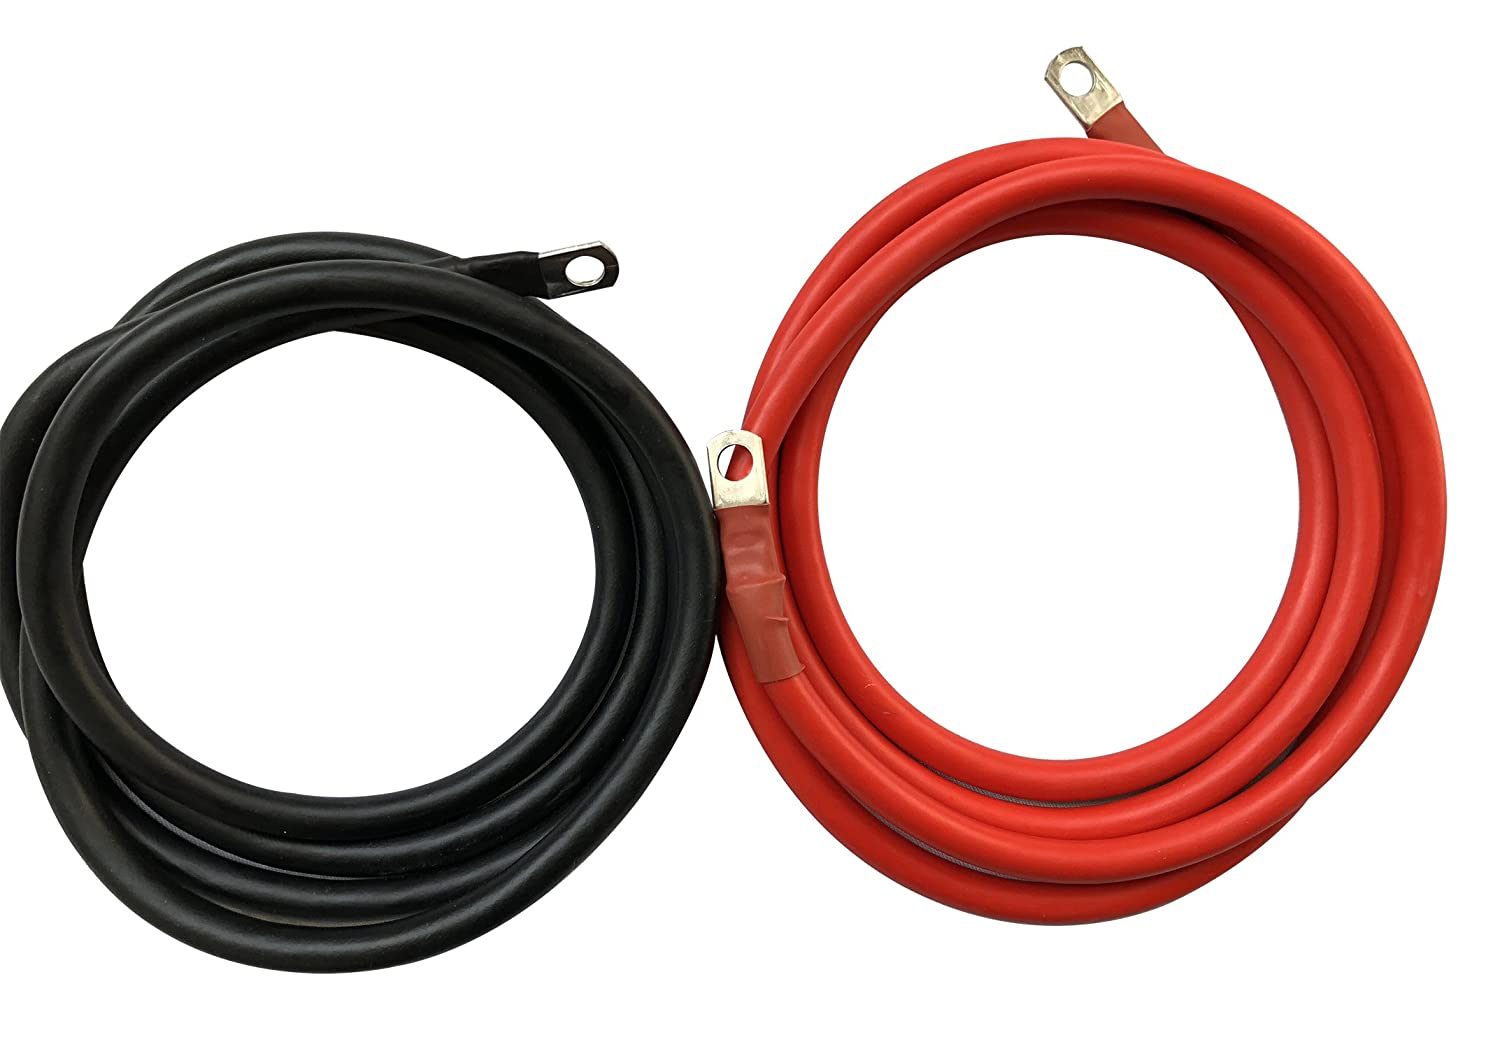 Winch Welding Cable 6 Ft Suitable for All Cars Motor Boats 25 mm/²